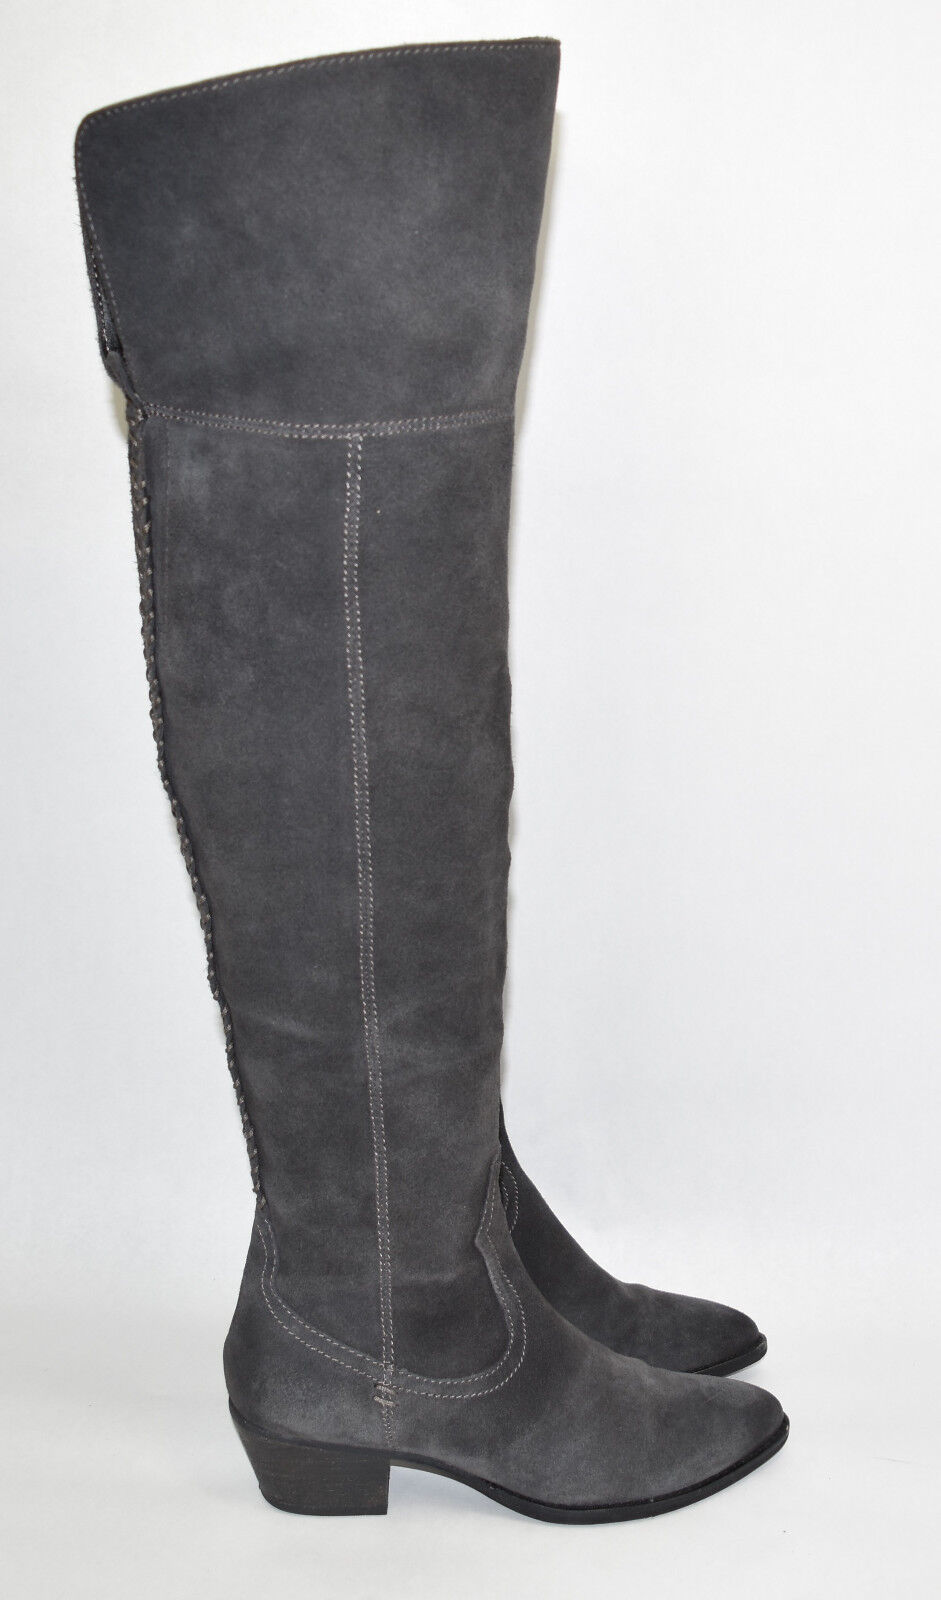 Dolce Vita 'Silas' Over the Knee Boot Anthracite Suede Gray Size 6.5